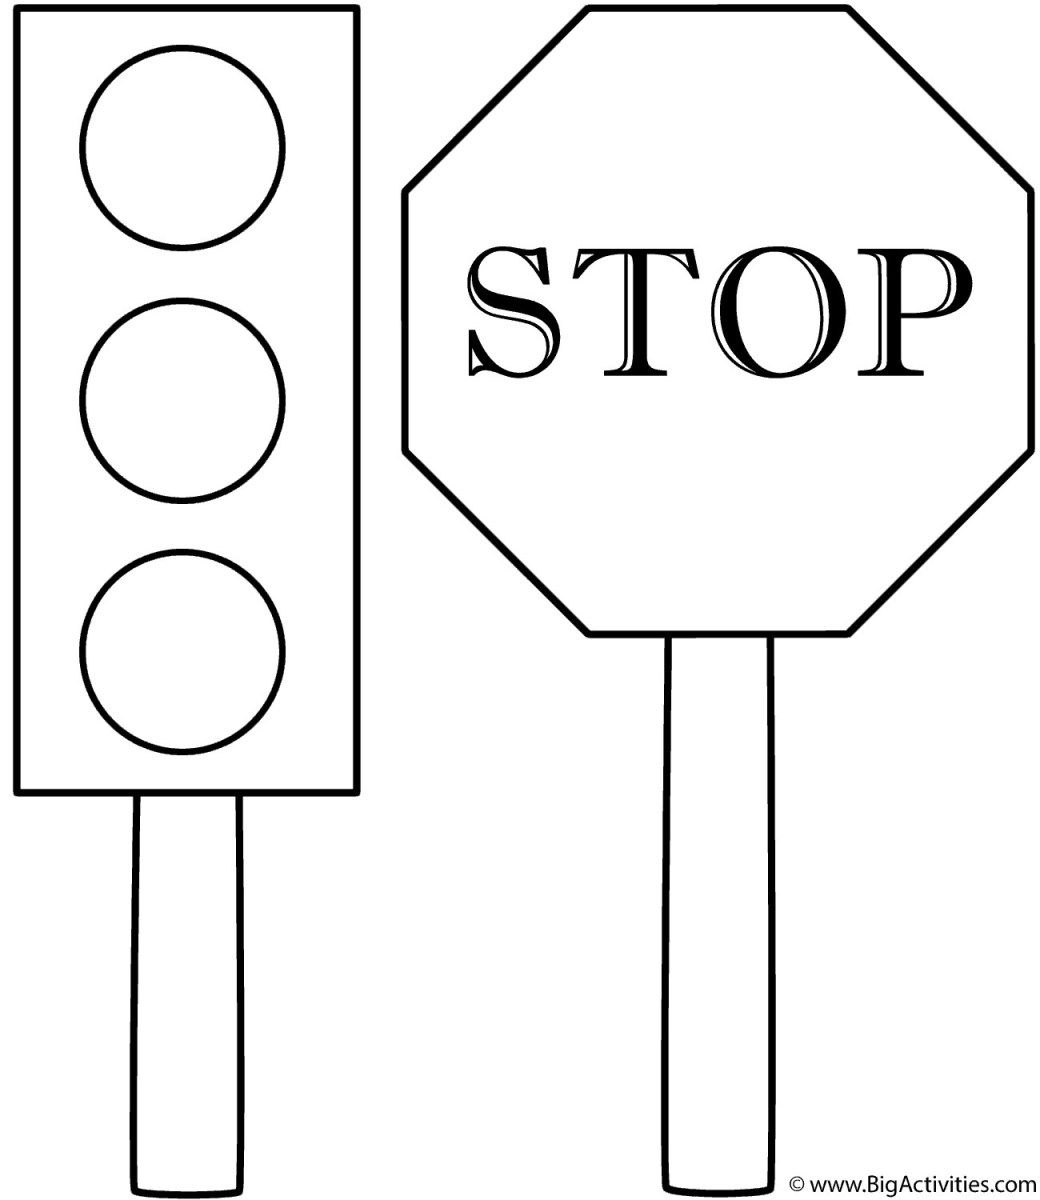 Stop Sign Coloring Page Traffic Light And Stop Sign Coloring Page Safety Birijus Com Safety Crafts Traffic Light Transportation Preschool